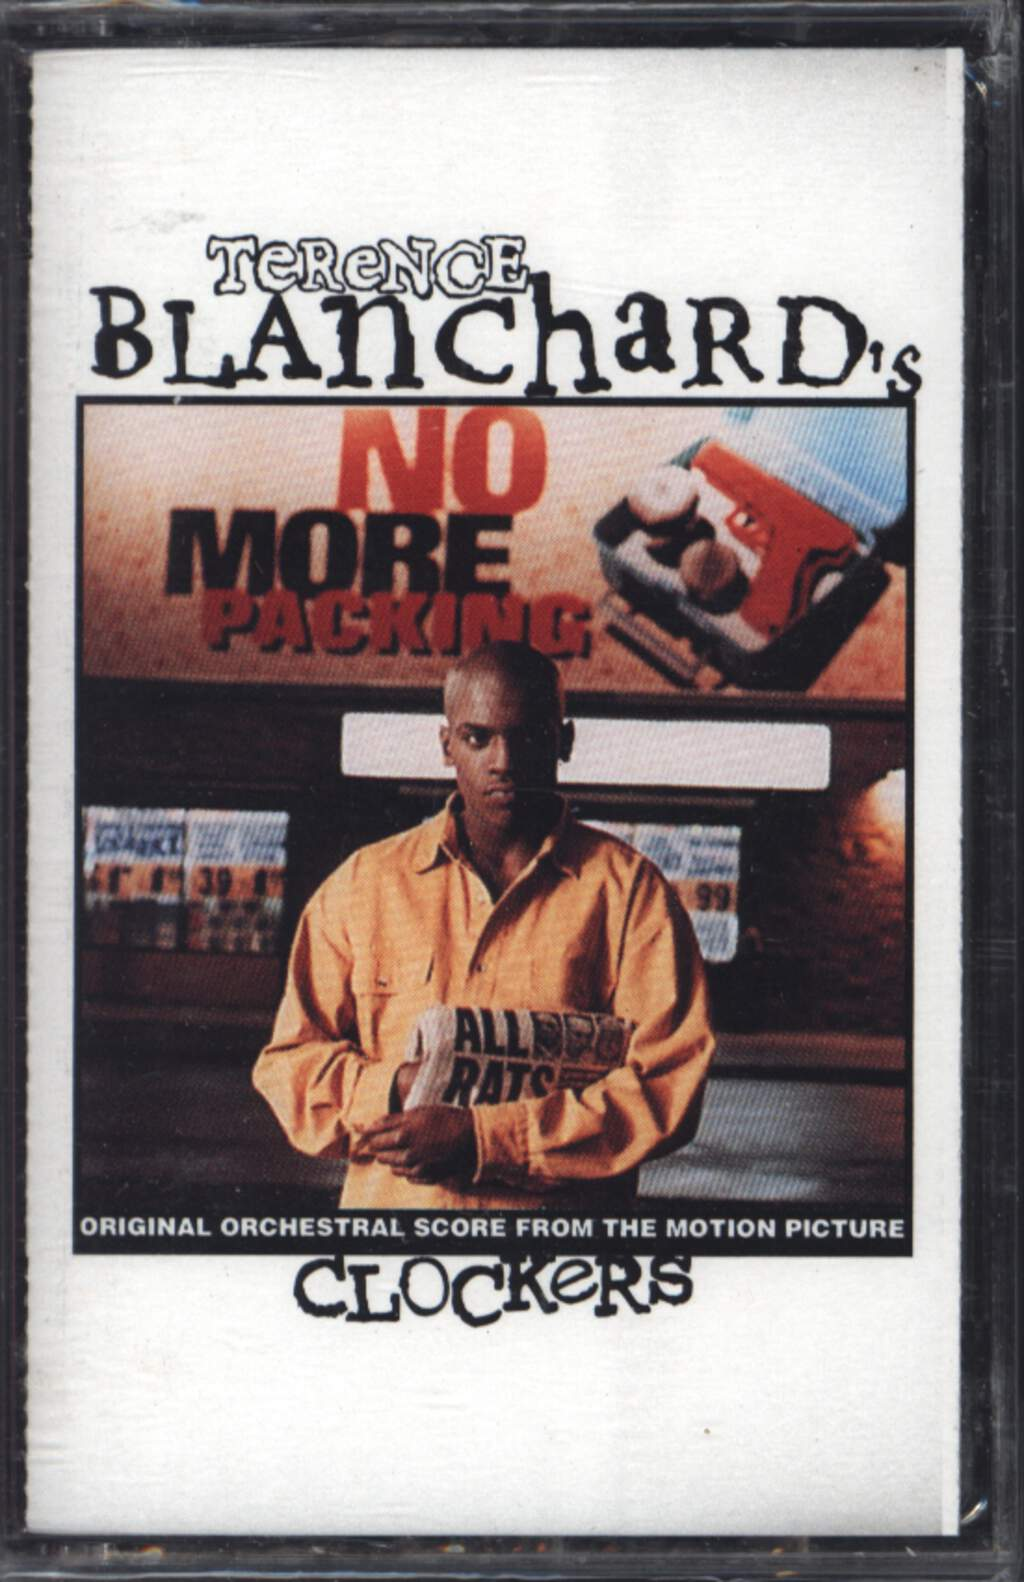 Terence Blanchard: Clockers (Original Orchestral Score From The Motion Picture), Compact Cassette